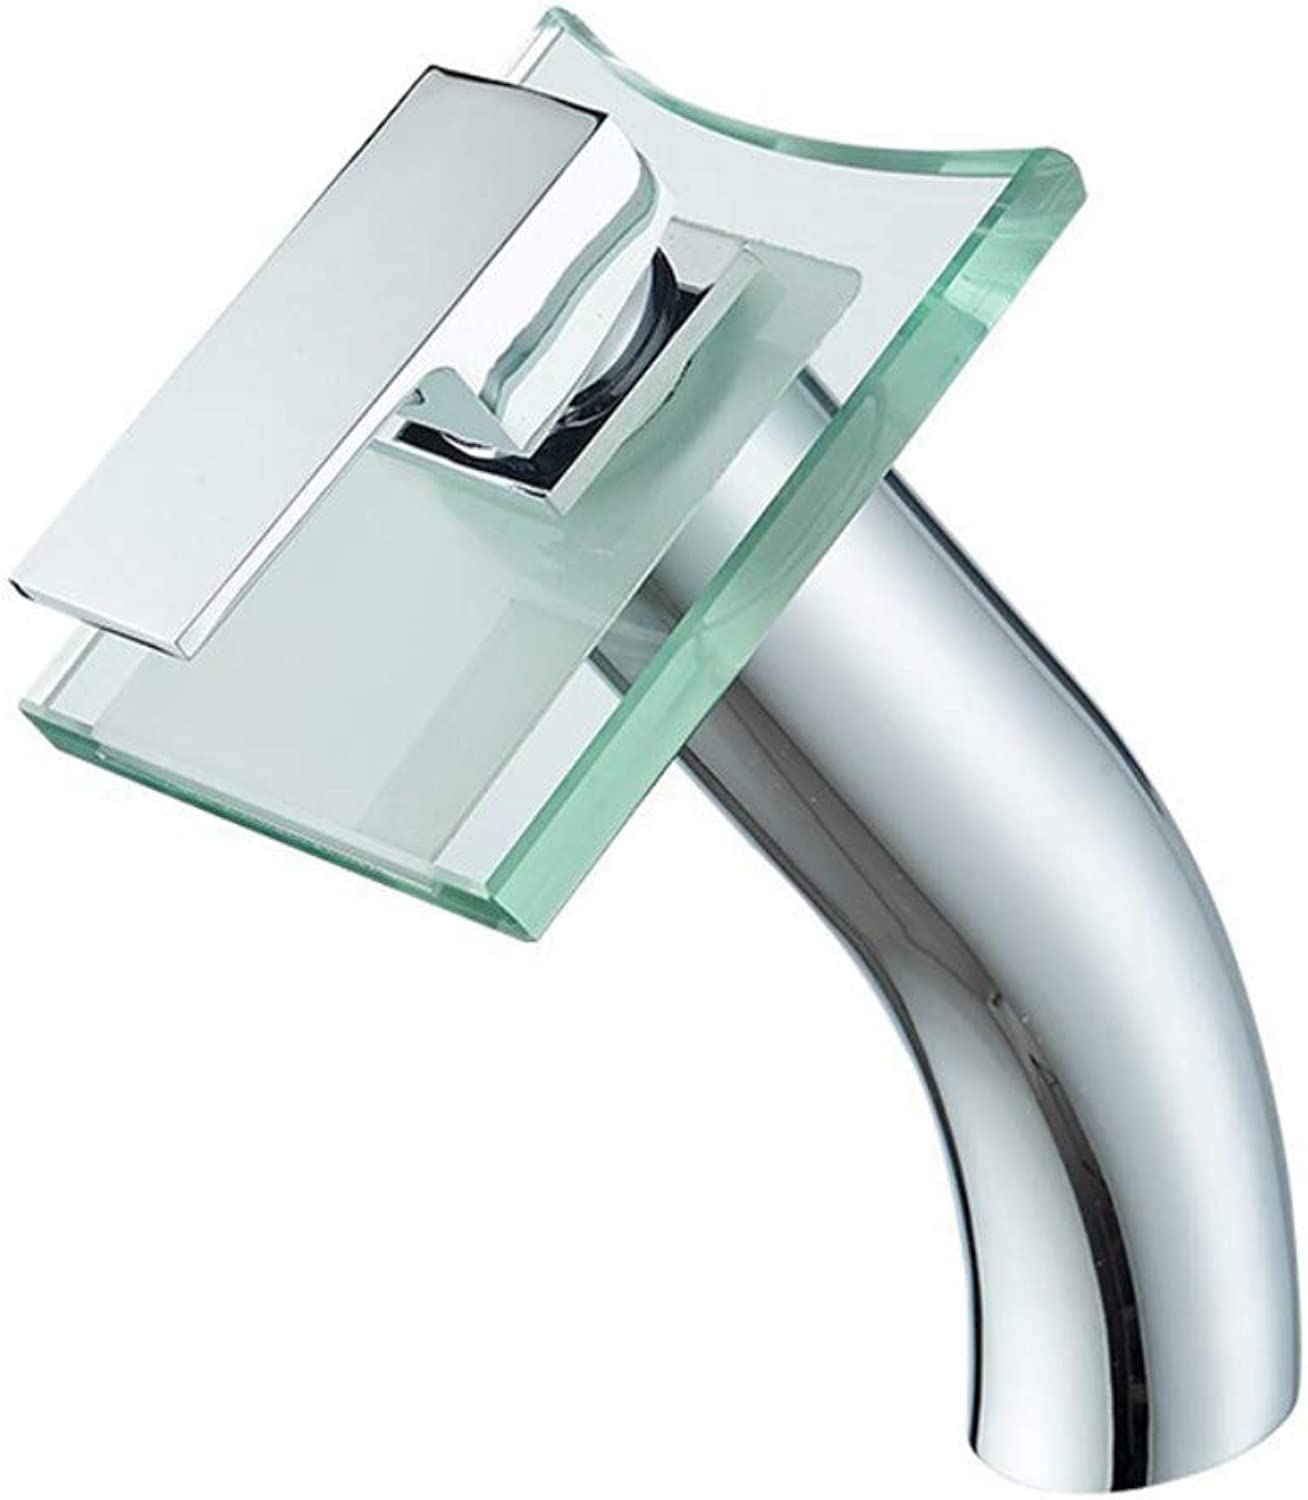 Kitchen & Bath Fixtures Taps Faucet,Bathroom Basin Faucet Plating Single Hole Hot and Cold Water Mixer